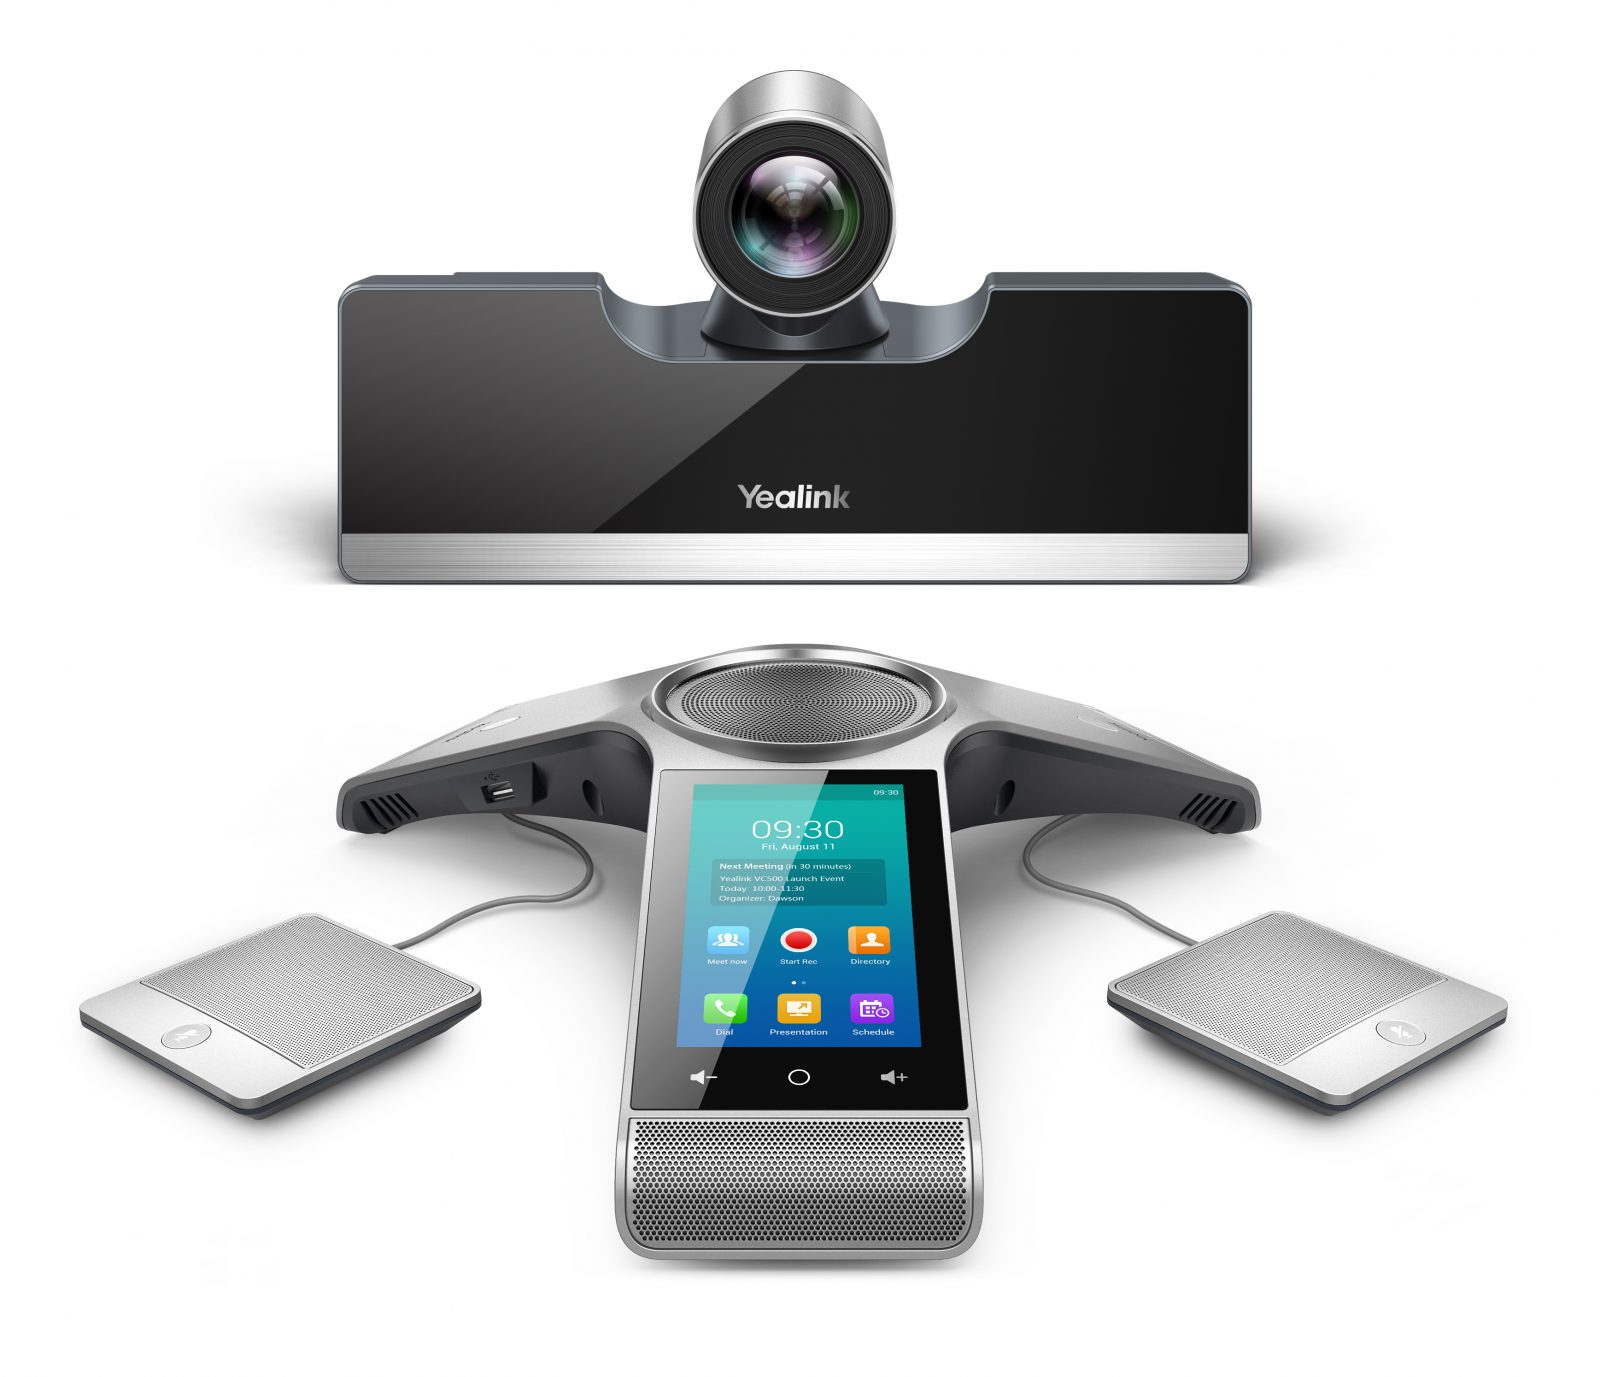 Yealink VC500 Video Conference System - Hong Kong & Macau customer, please call 852 39001988 for more information - Matrix Technology HK Ltd